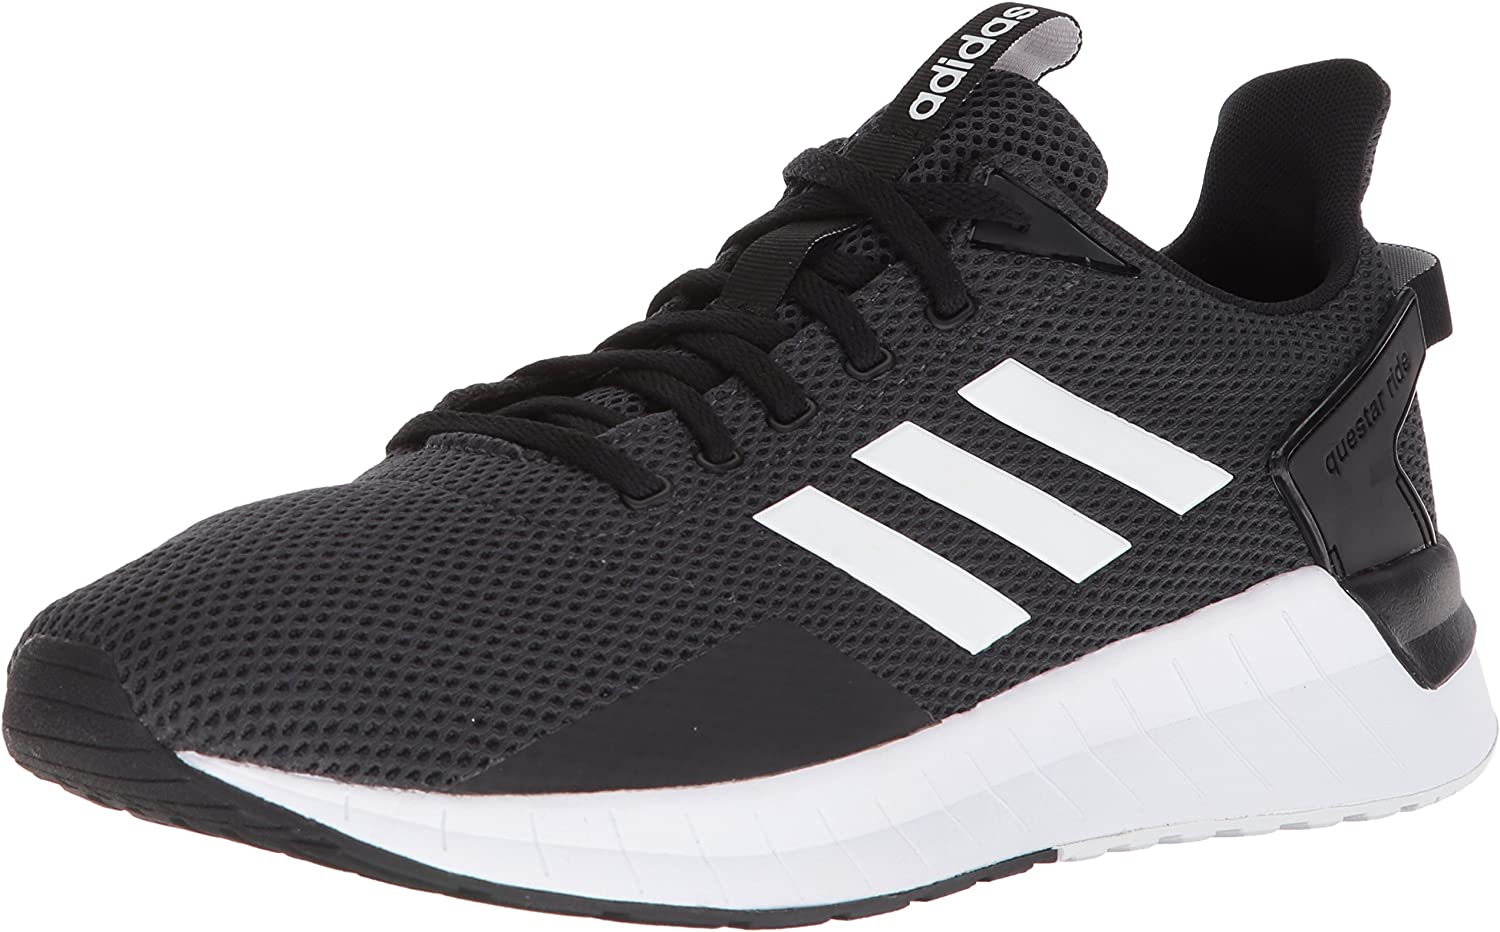 Adidas Mens Questar Ride Sneakers